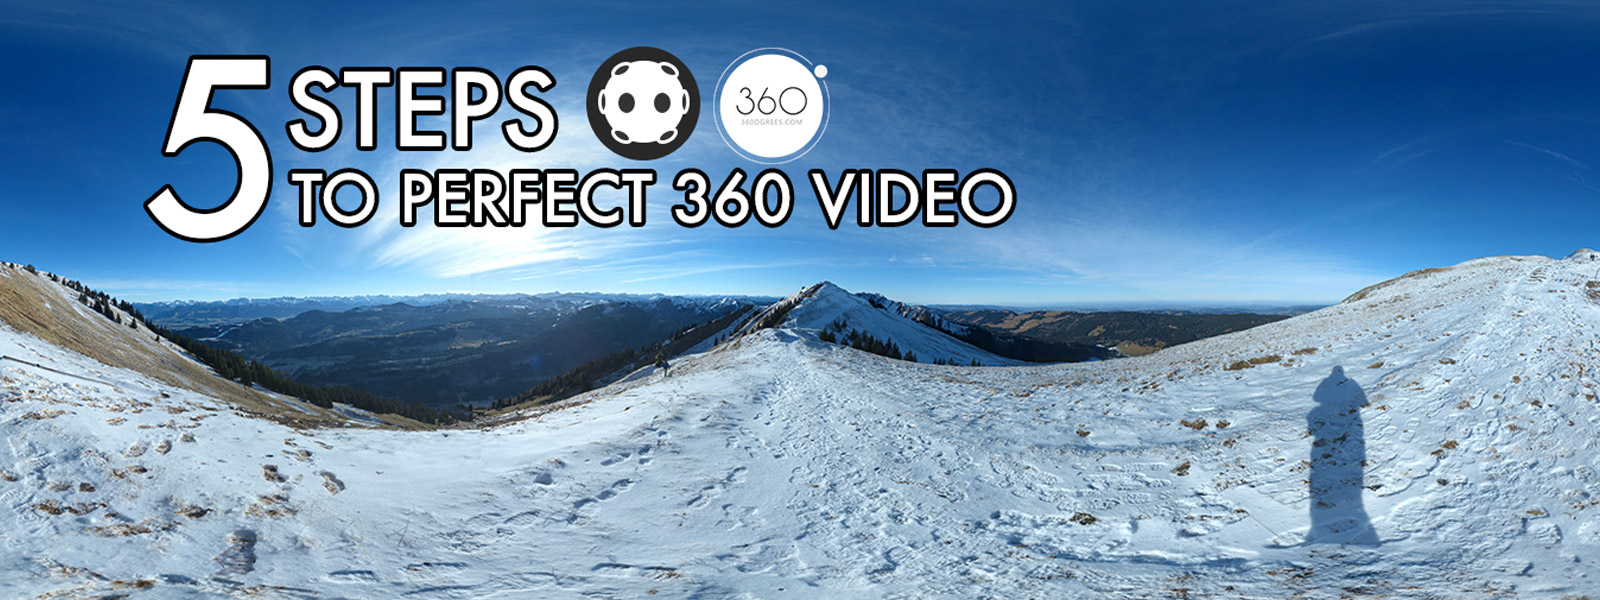 steps-to-perfect-360-video